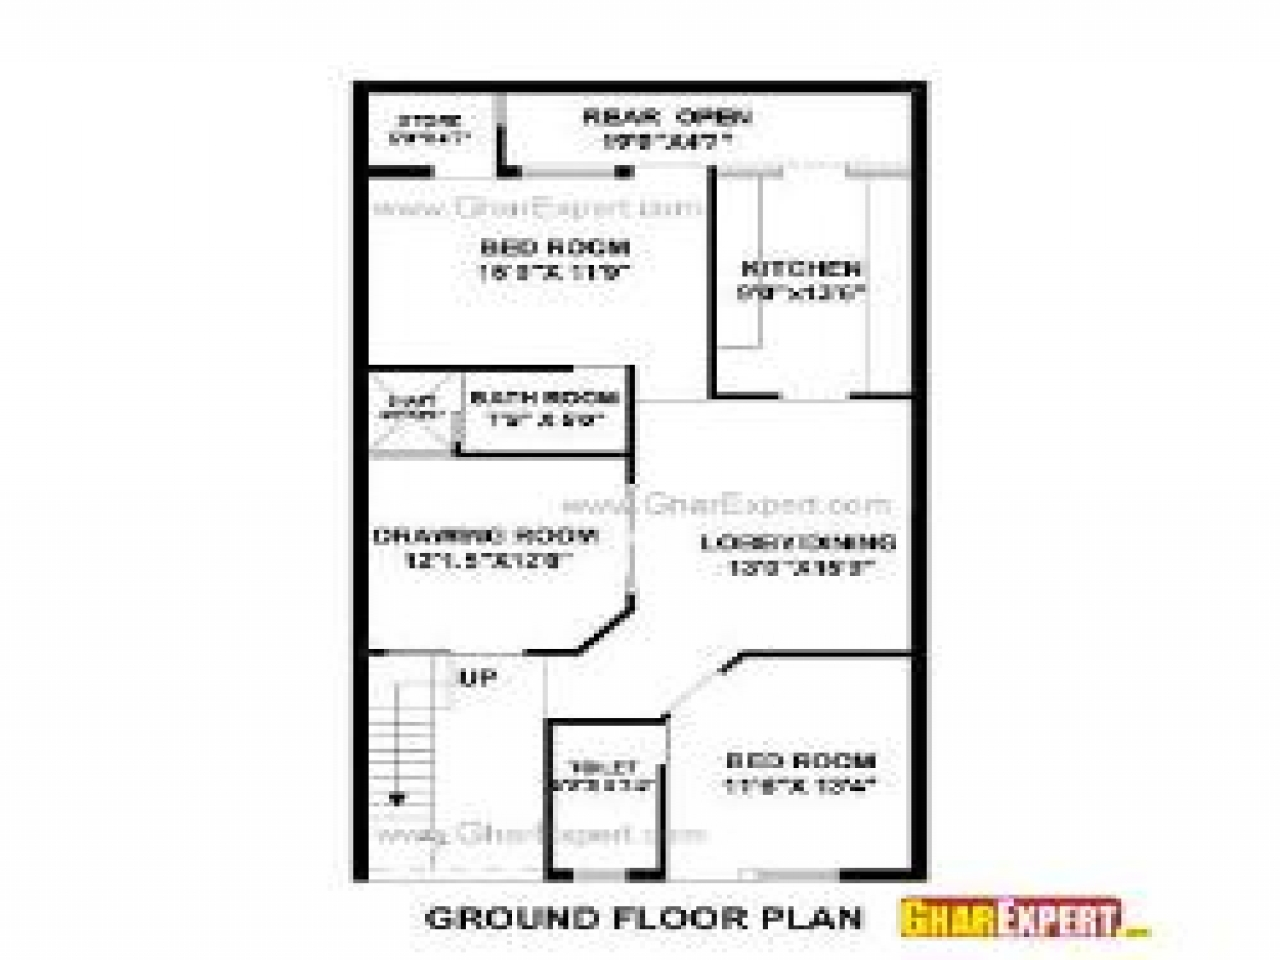 4 bedroom house plans house plans 30 by 50 feet building for Building plans cost estimate